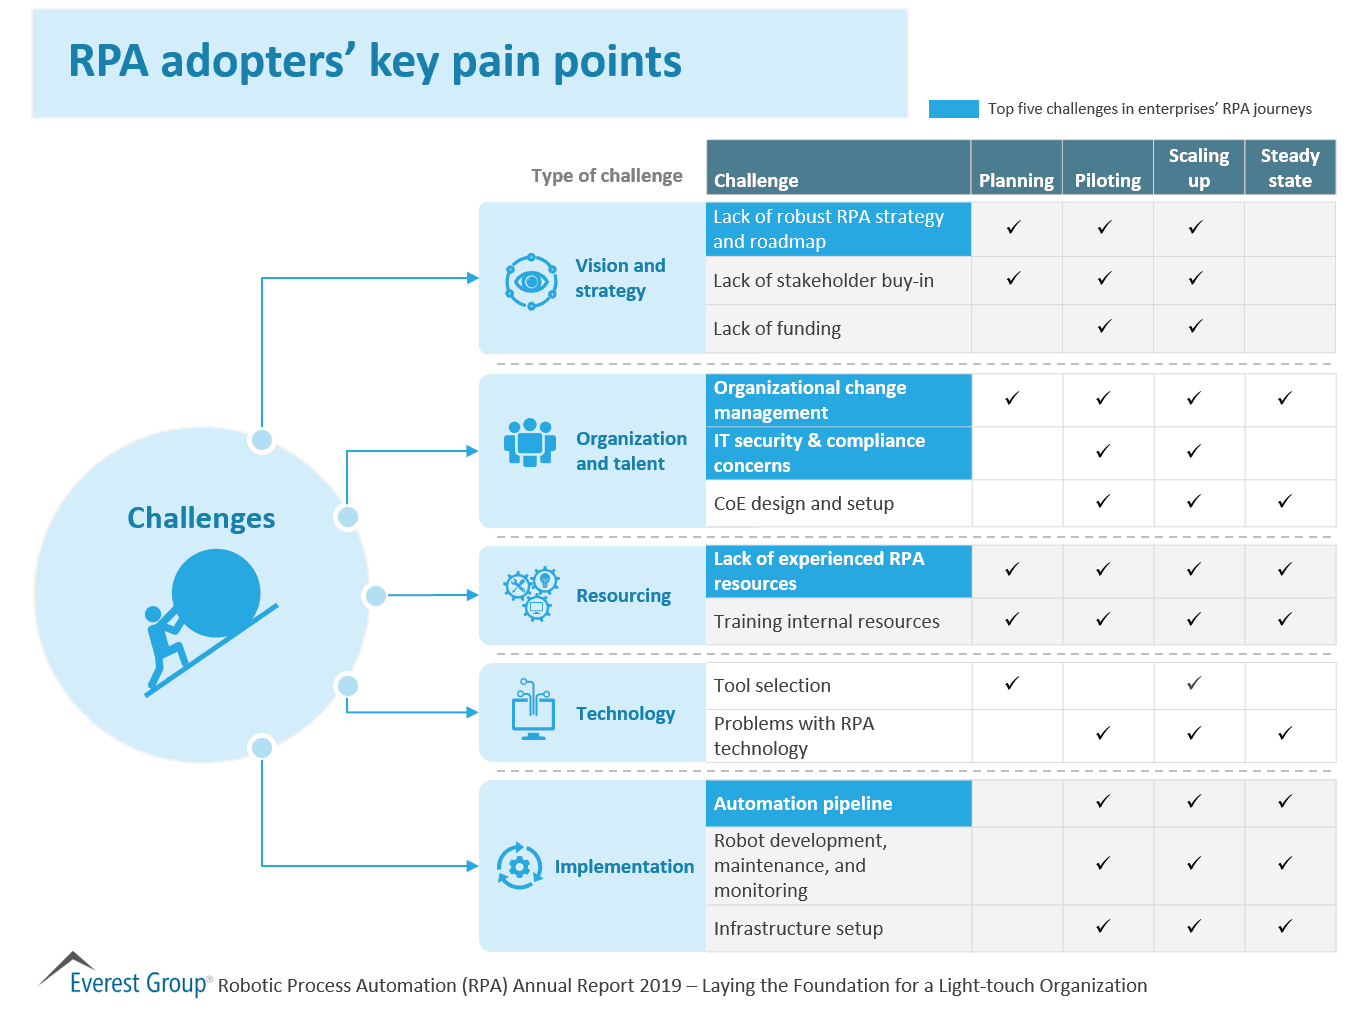 RPA adopters key pain points